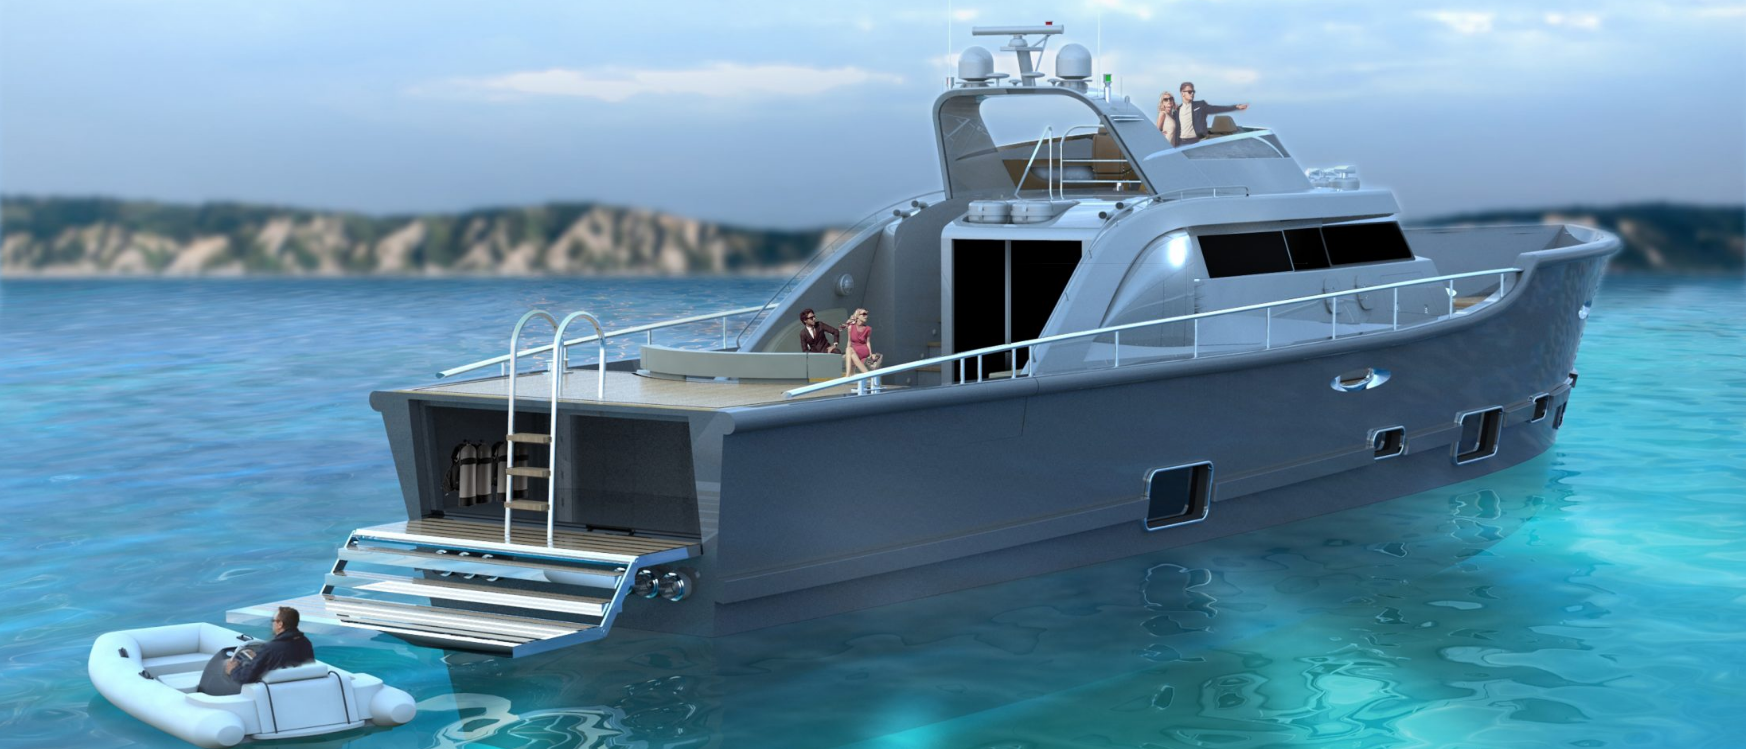 Pictures Seafire The New Military Style Luxury Sports